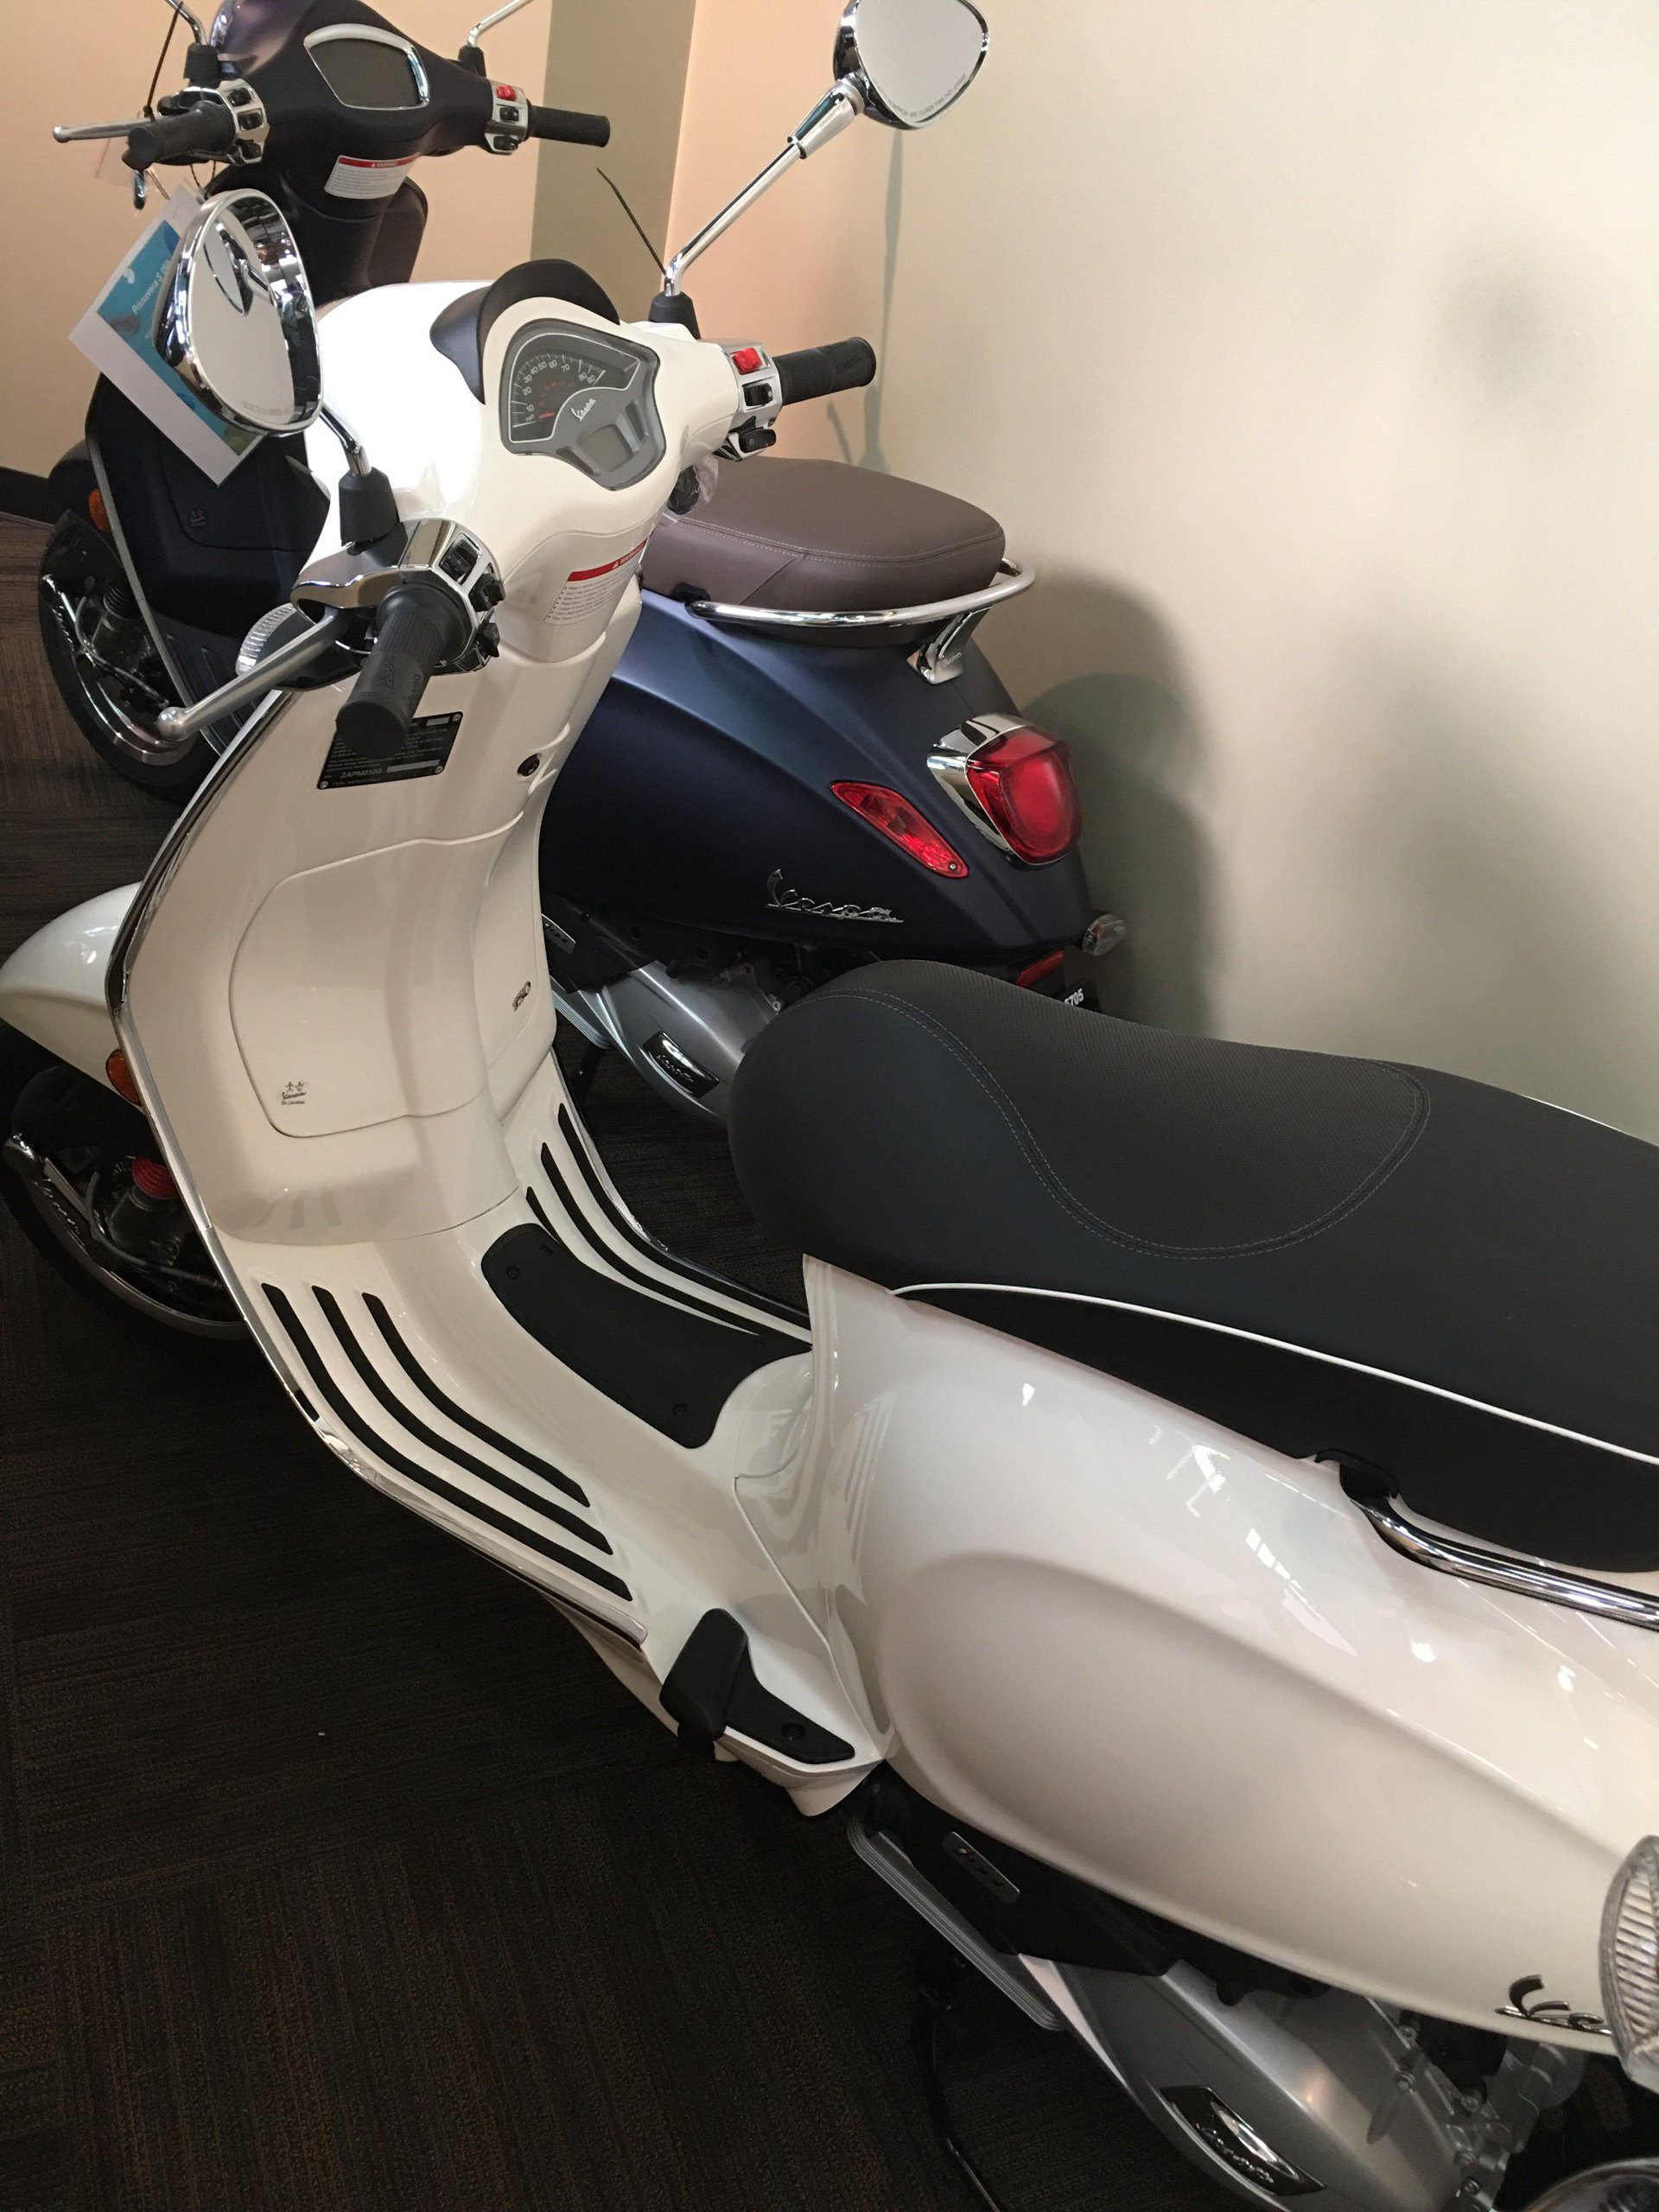 2019 Vespa Sprint 150 in Woodstock, Illinois